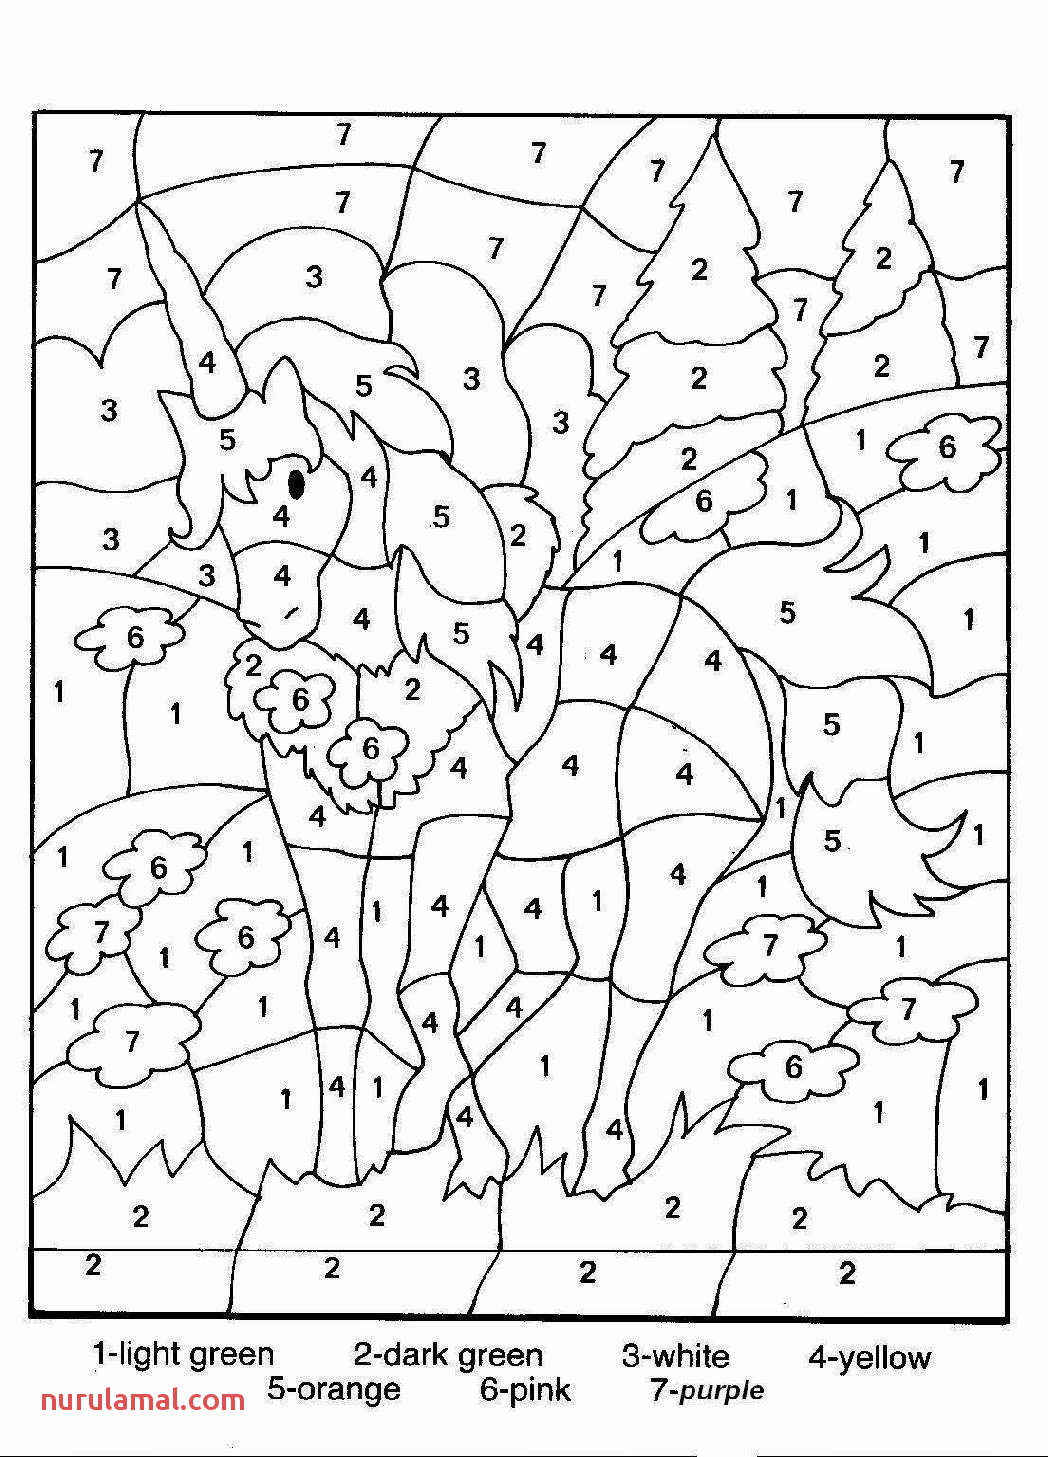 b93d3c b04a59ffe2fcbea9edd8 coloring pages math coloring worksheets free printable sheets 1048 1457